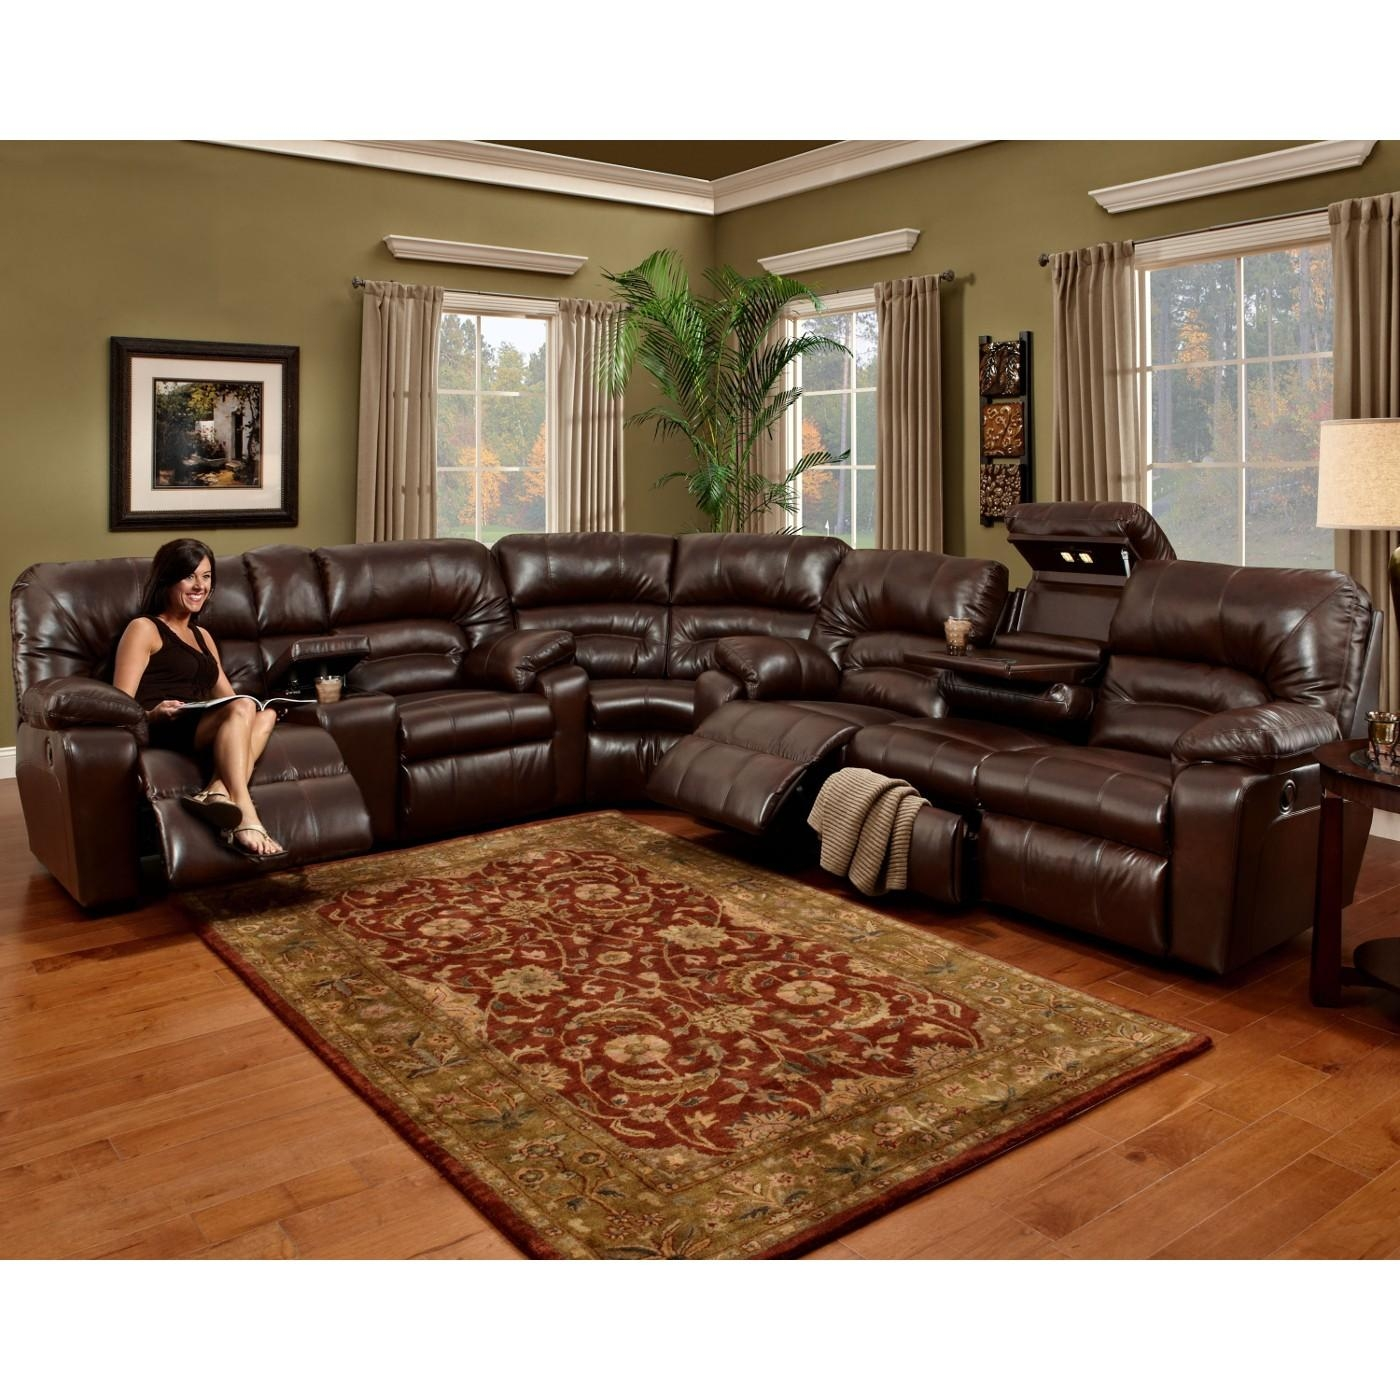 Media Room Sectional Sofas Artistic Color Decor Best With Media With Regard To Media Room Sectional (Photo 8 of 20)